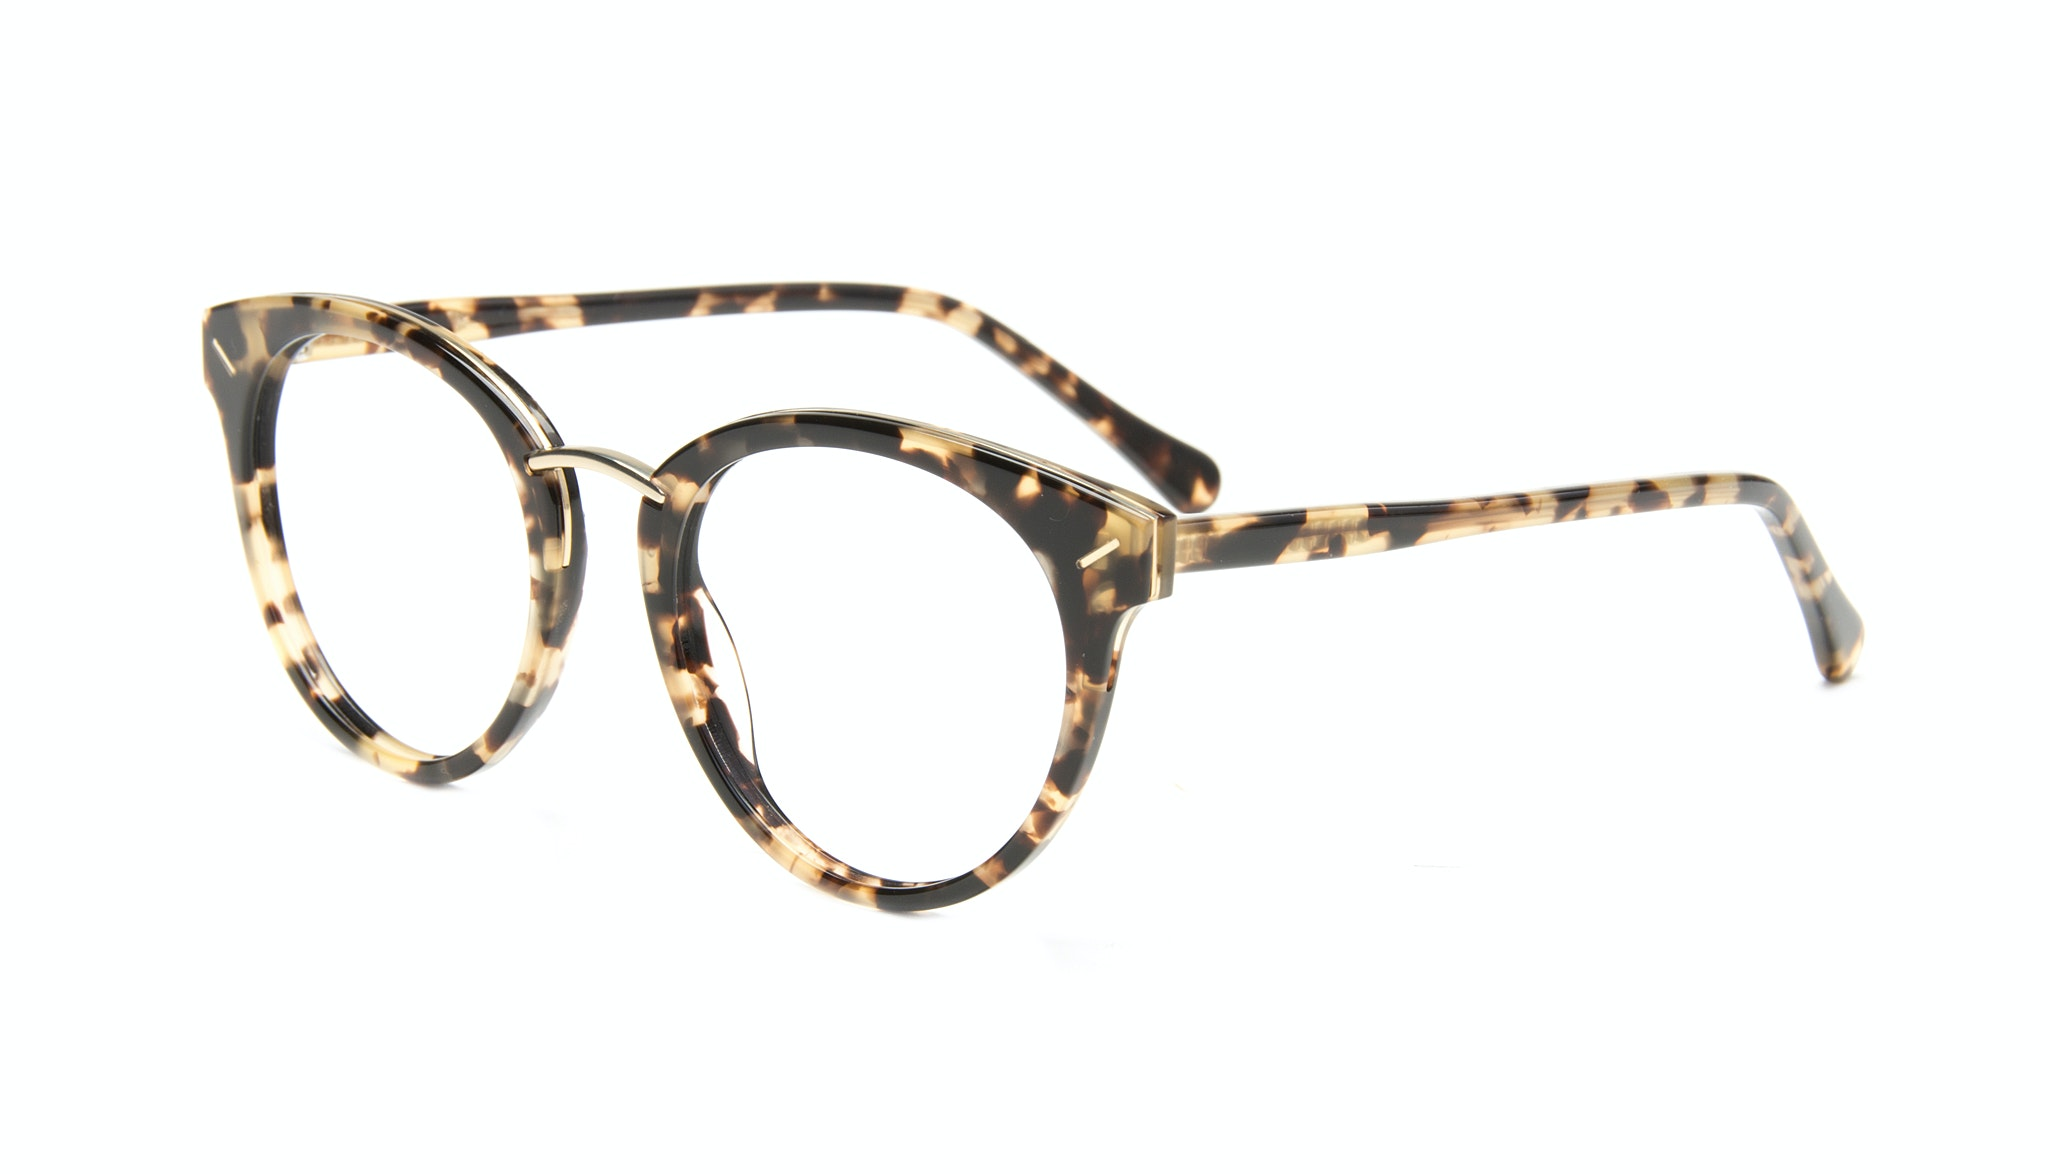 Affordable Fashion Glasses Round Eyeglasses Women Element Gold Tort Tilt